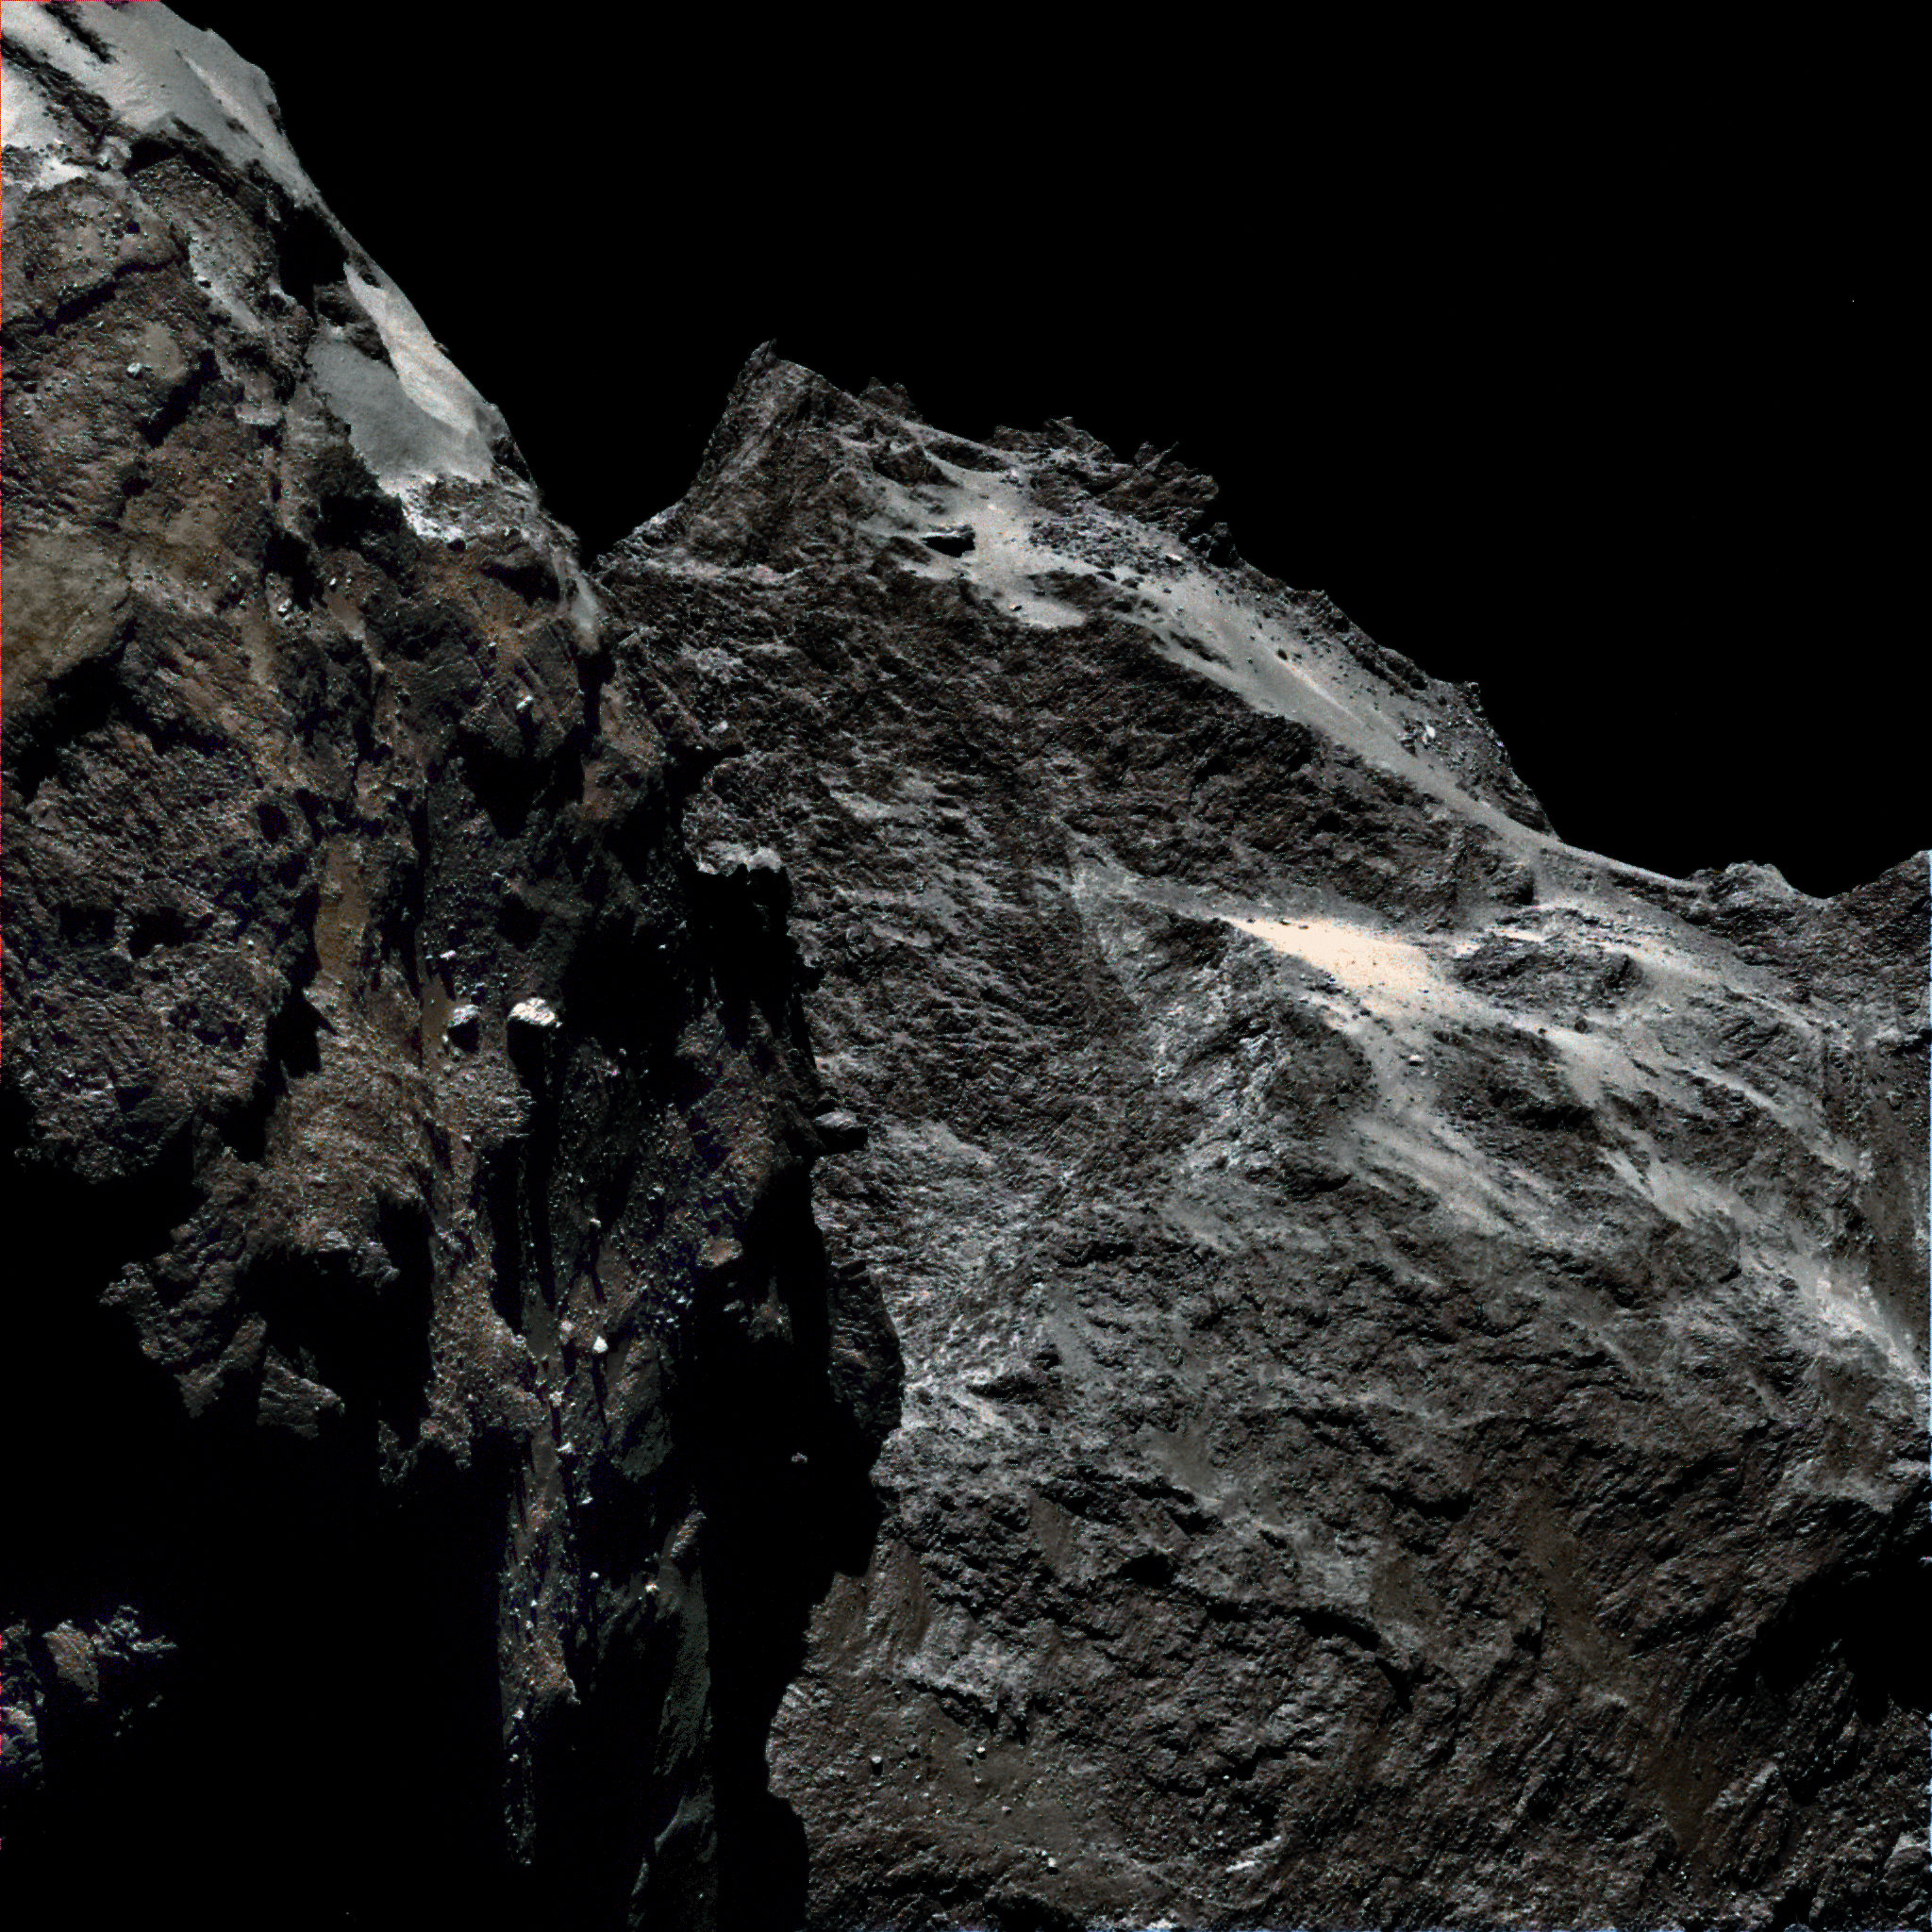 Close-up of comet surface.